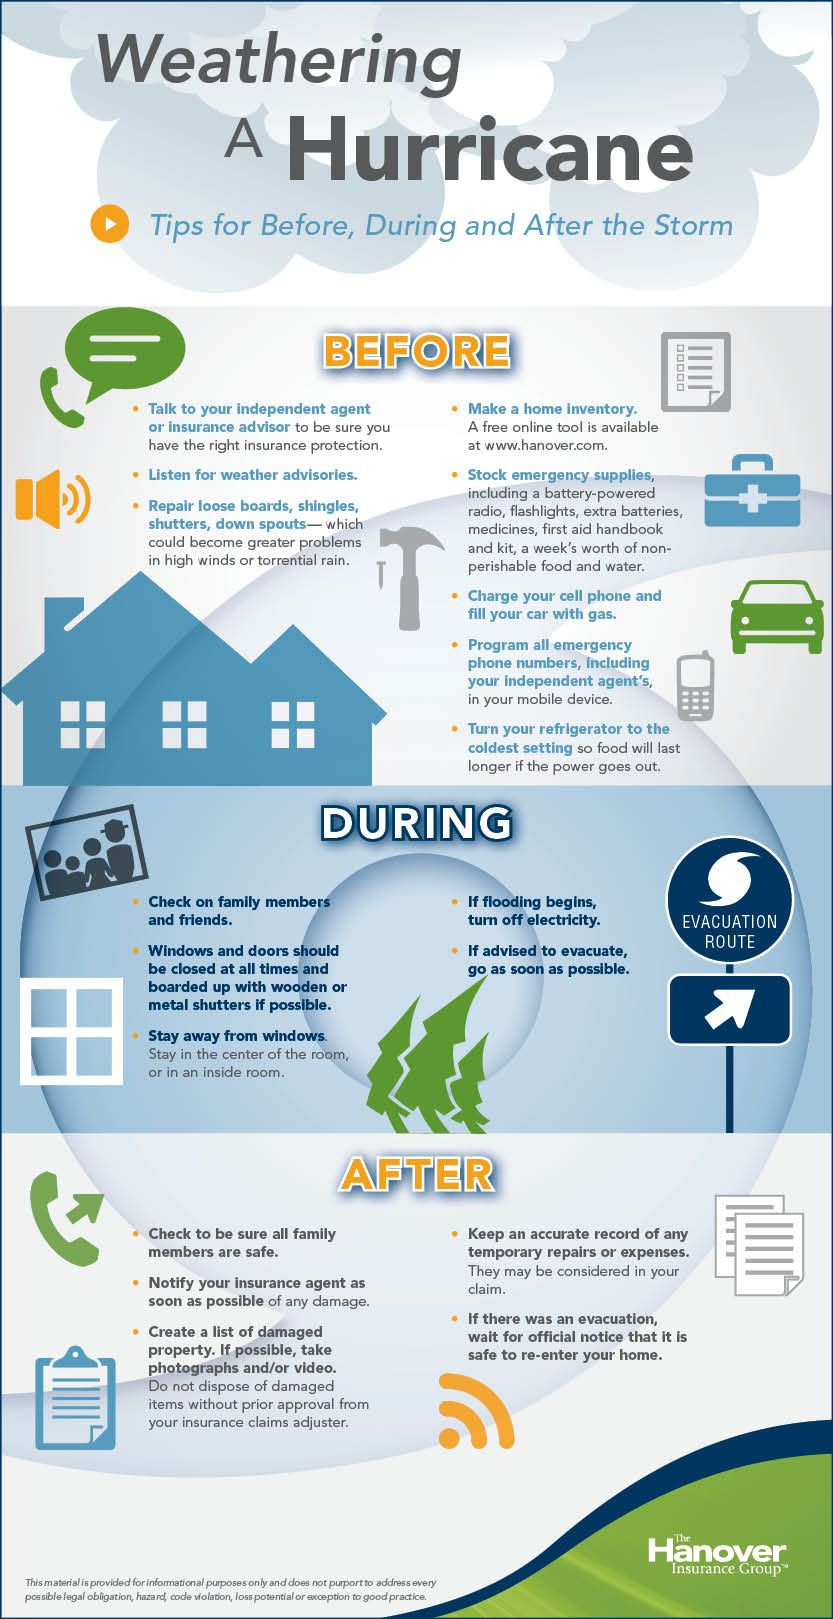 10 Things You Should Know To Protect Your Home And Wallet From